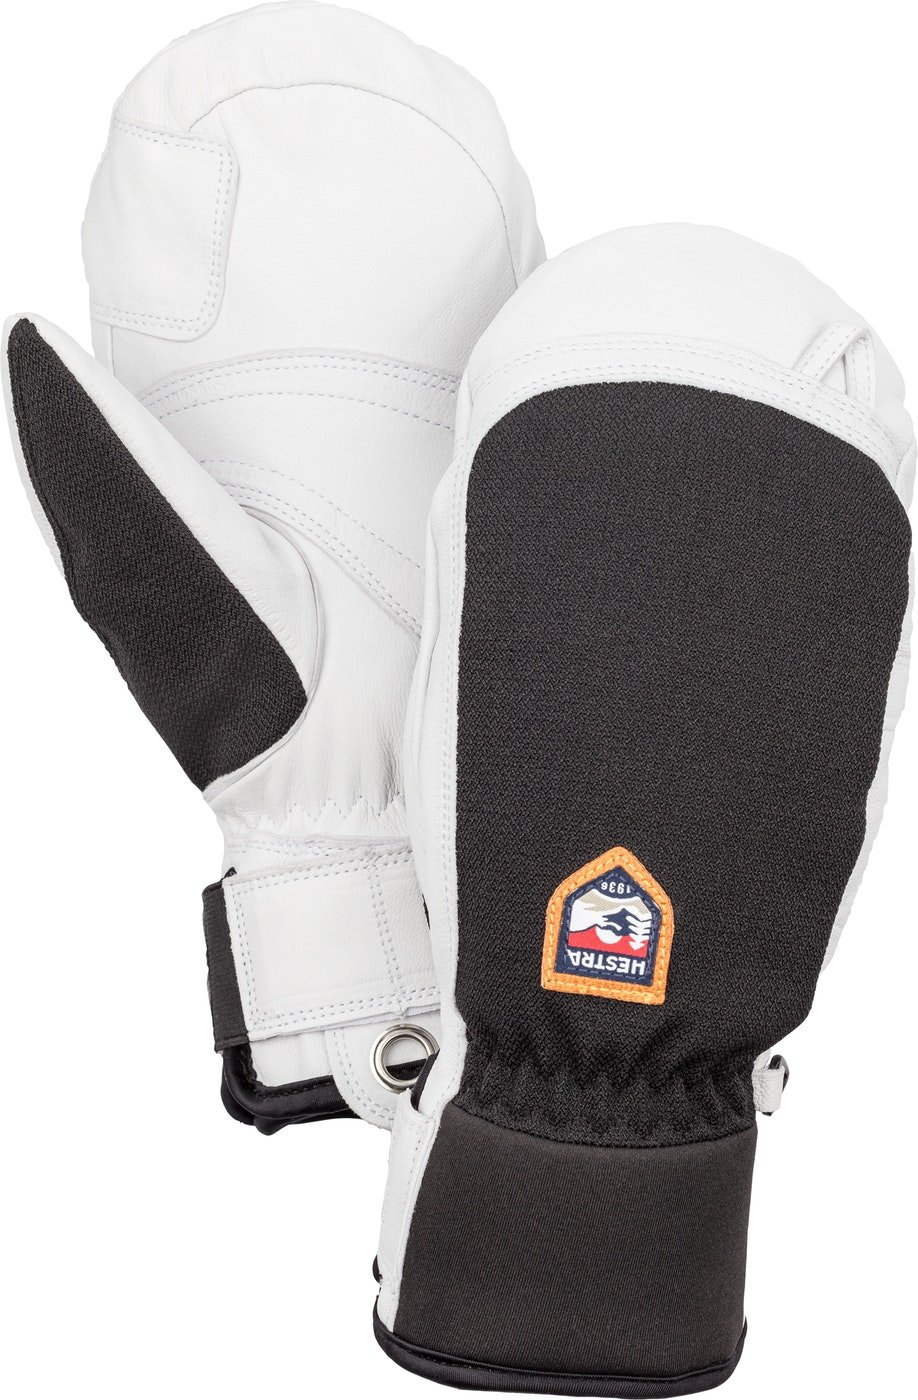 Hestra Army Leather Patrol Mitts